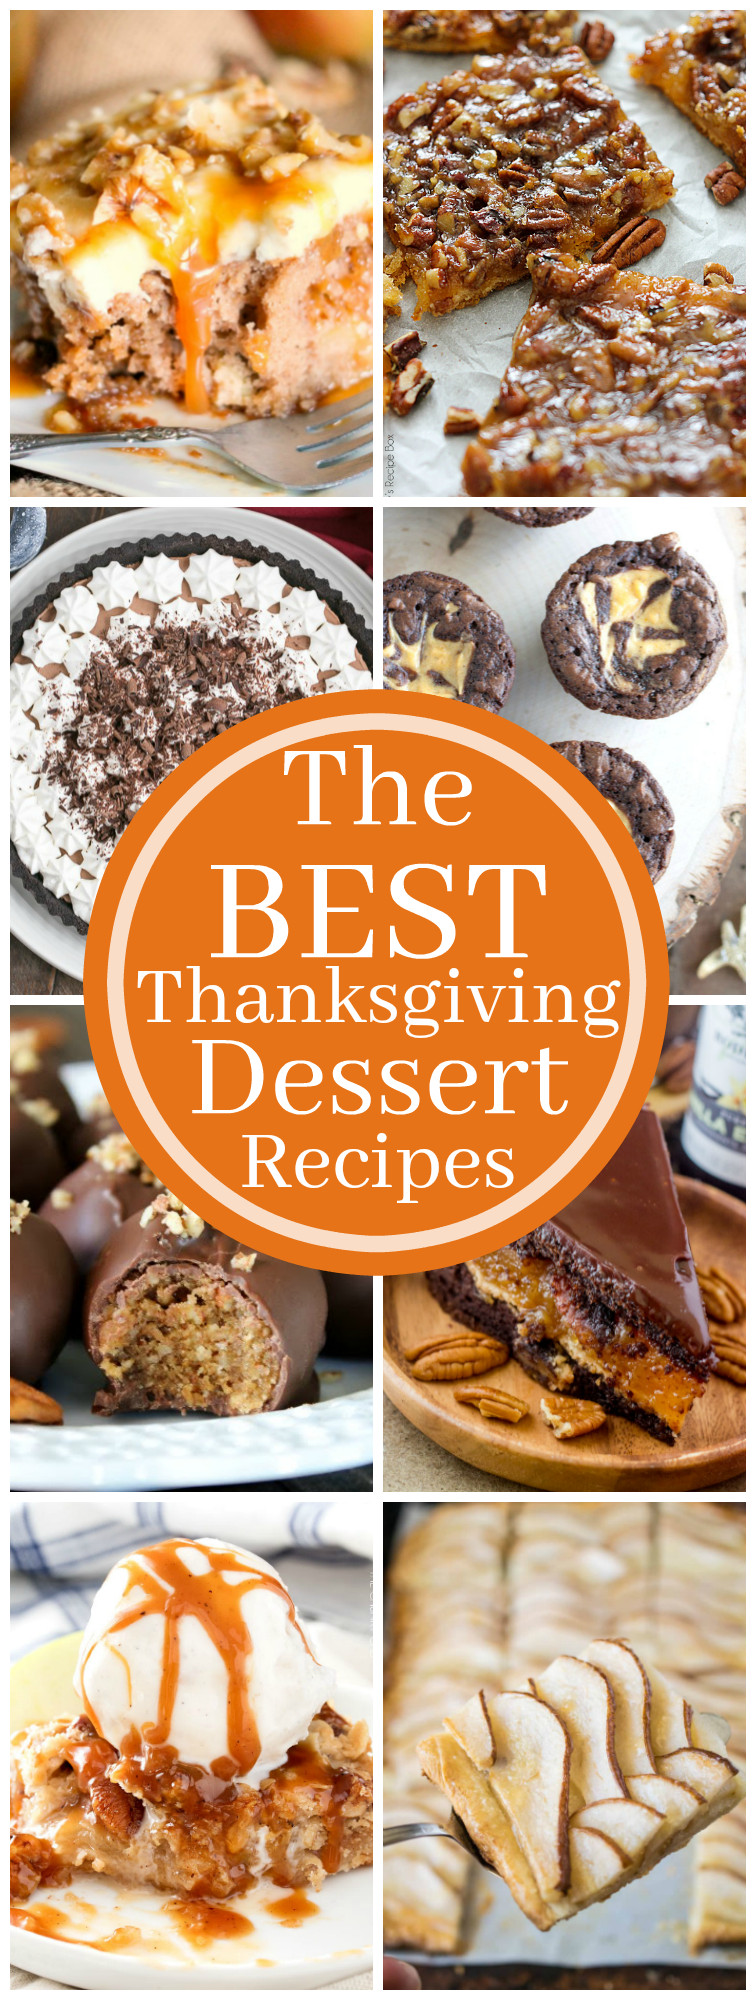 Great Thanksgiving Desserts  The Best Thanksgiving Dessert Recipes The Chunky Chef